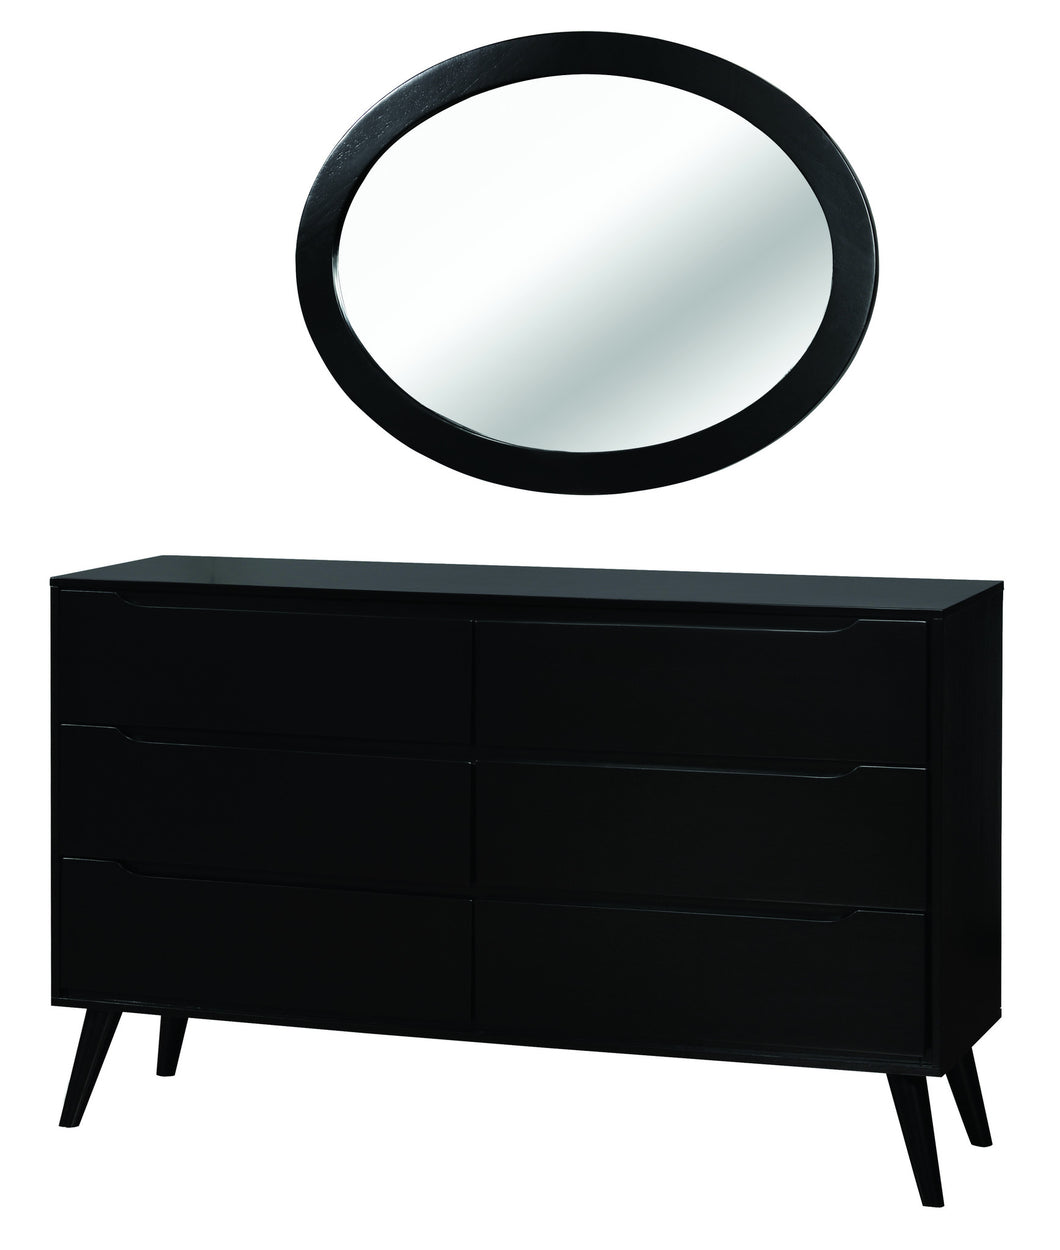 Image of: Garro Mid Century Modern Dresser And Oval Wall Mount Mirror 24 7 Shop At Home